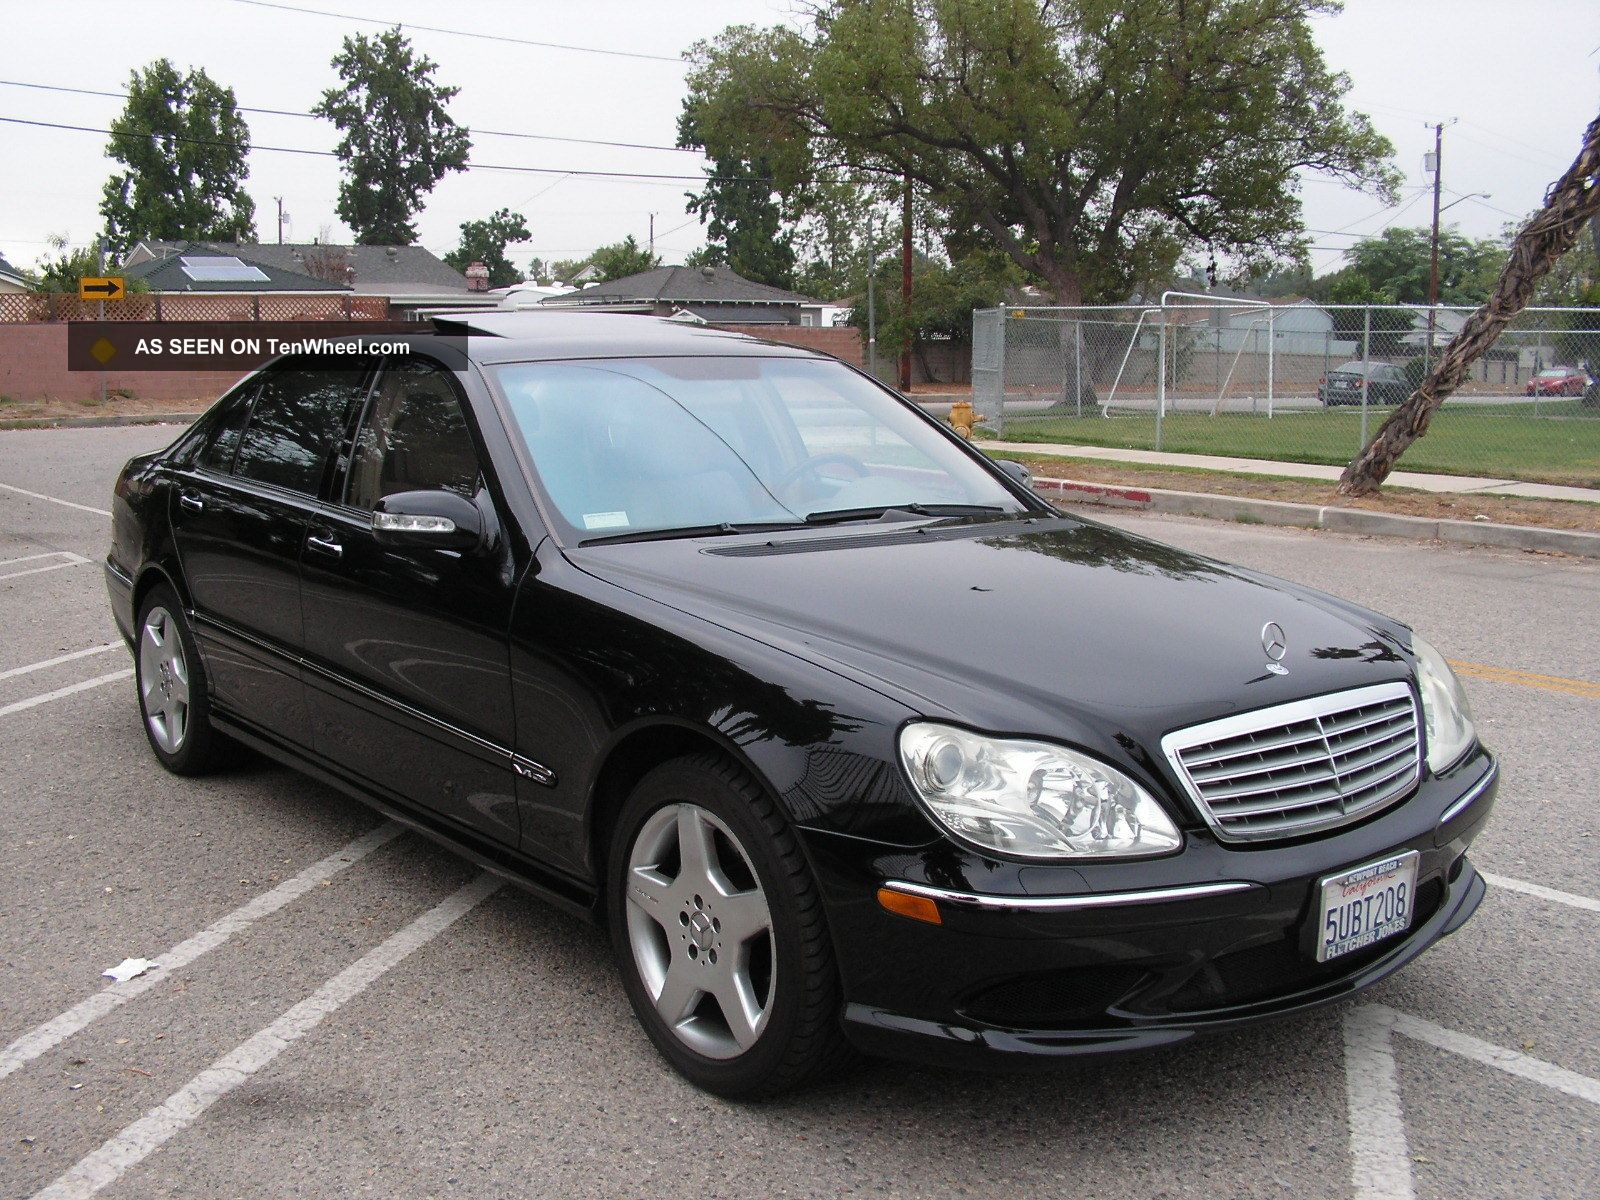 2003 mercedes benz s600 amg twin turbo 493hp 590tq